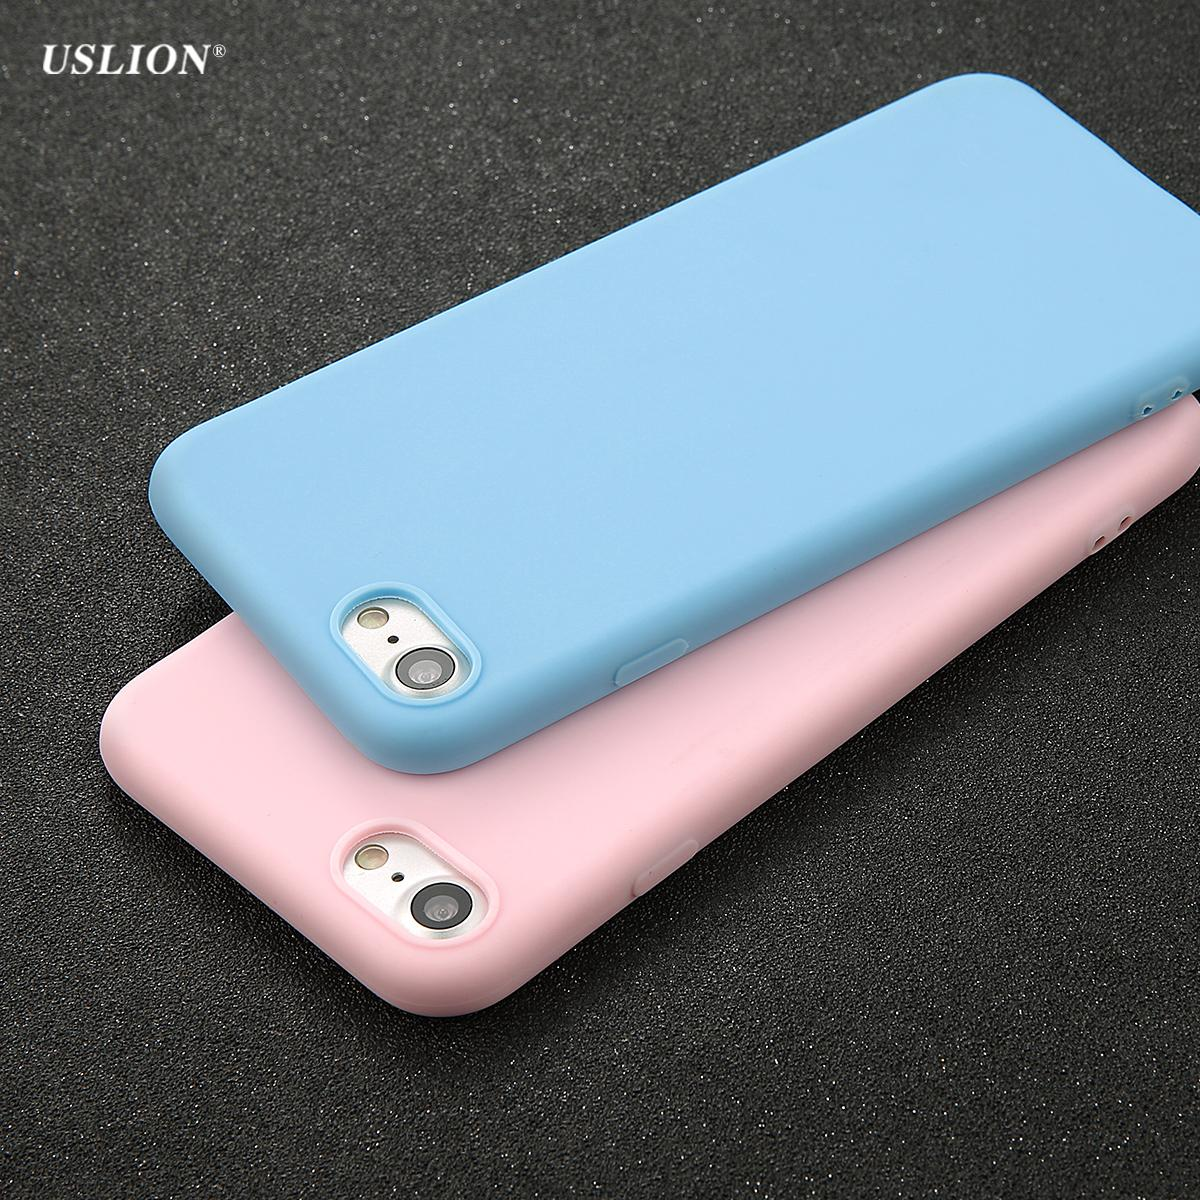 2018USLION Phone Case For IPhone 7 6 6s 8 X Plus 5 5s SE Simple Solid Color Ultrathin  Soft TPU Cases Fashion Candy Color Back Cover Case Fo Simple Solid ... e84e3d6363